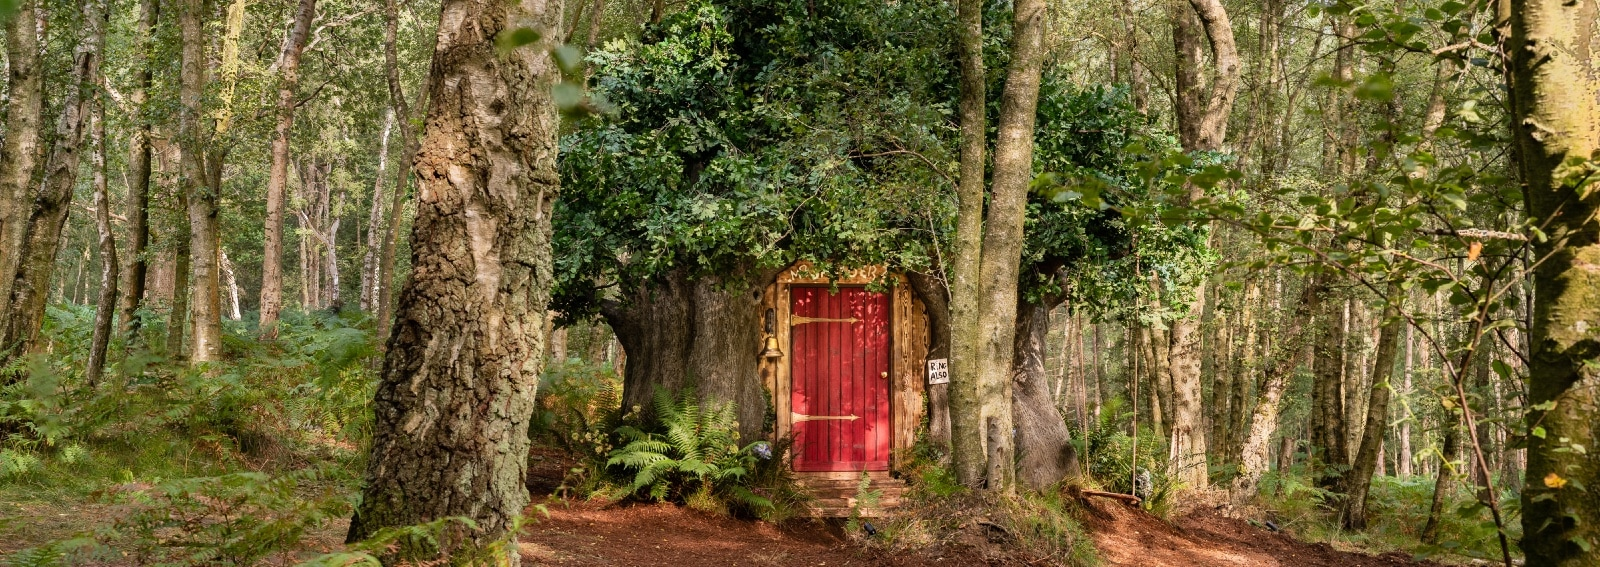 Winnie the Pooh House Airbnb - CREDIT Henry Woide